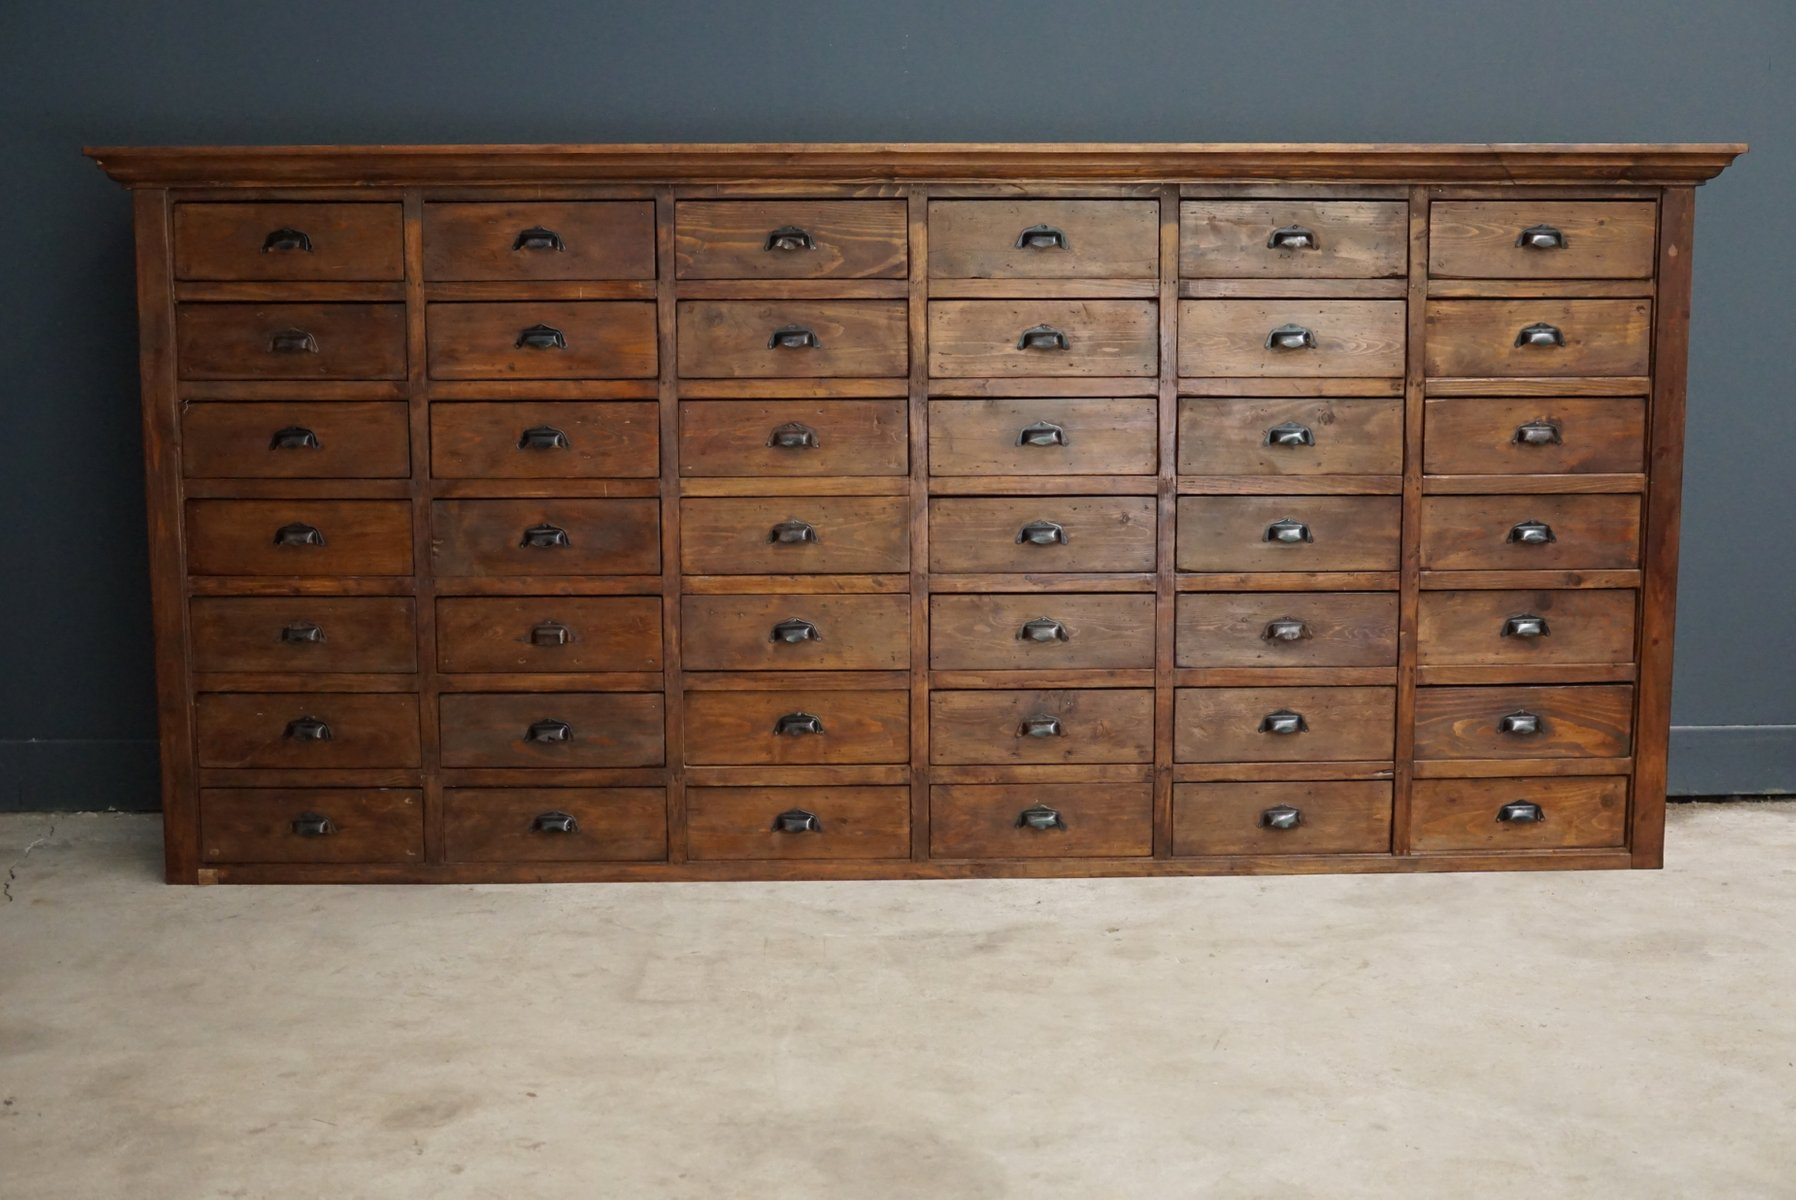 Large French Pine Apothecary Cabinet, 1950s for sale at Pamono